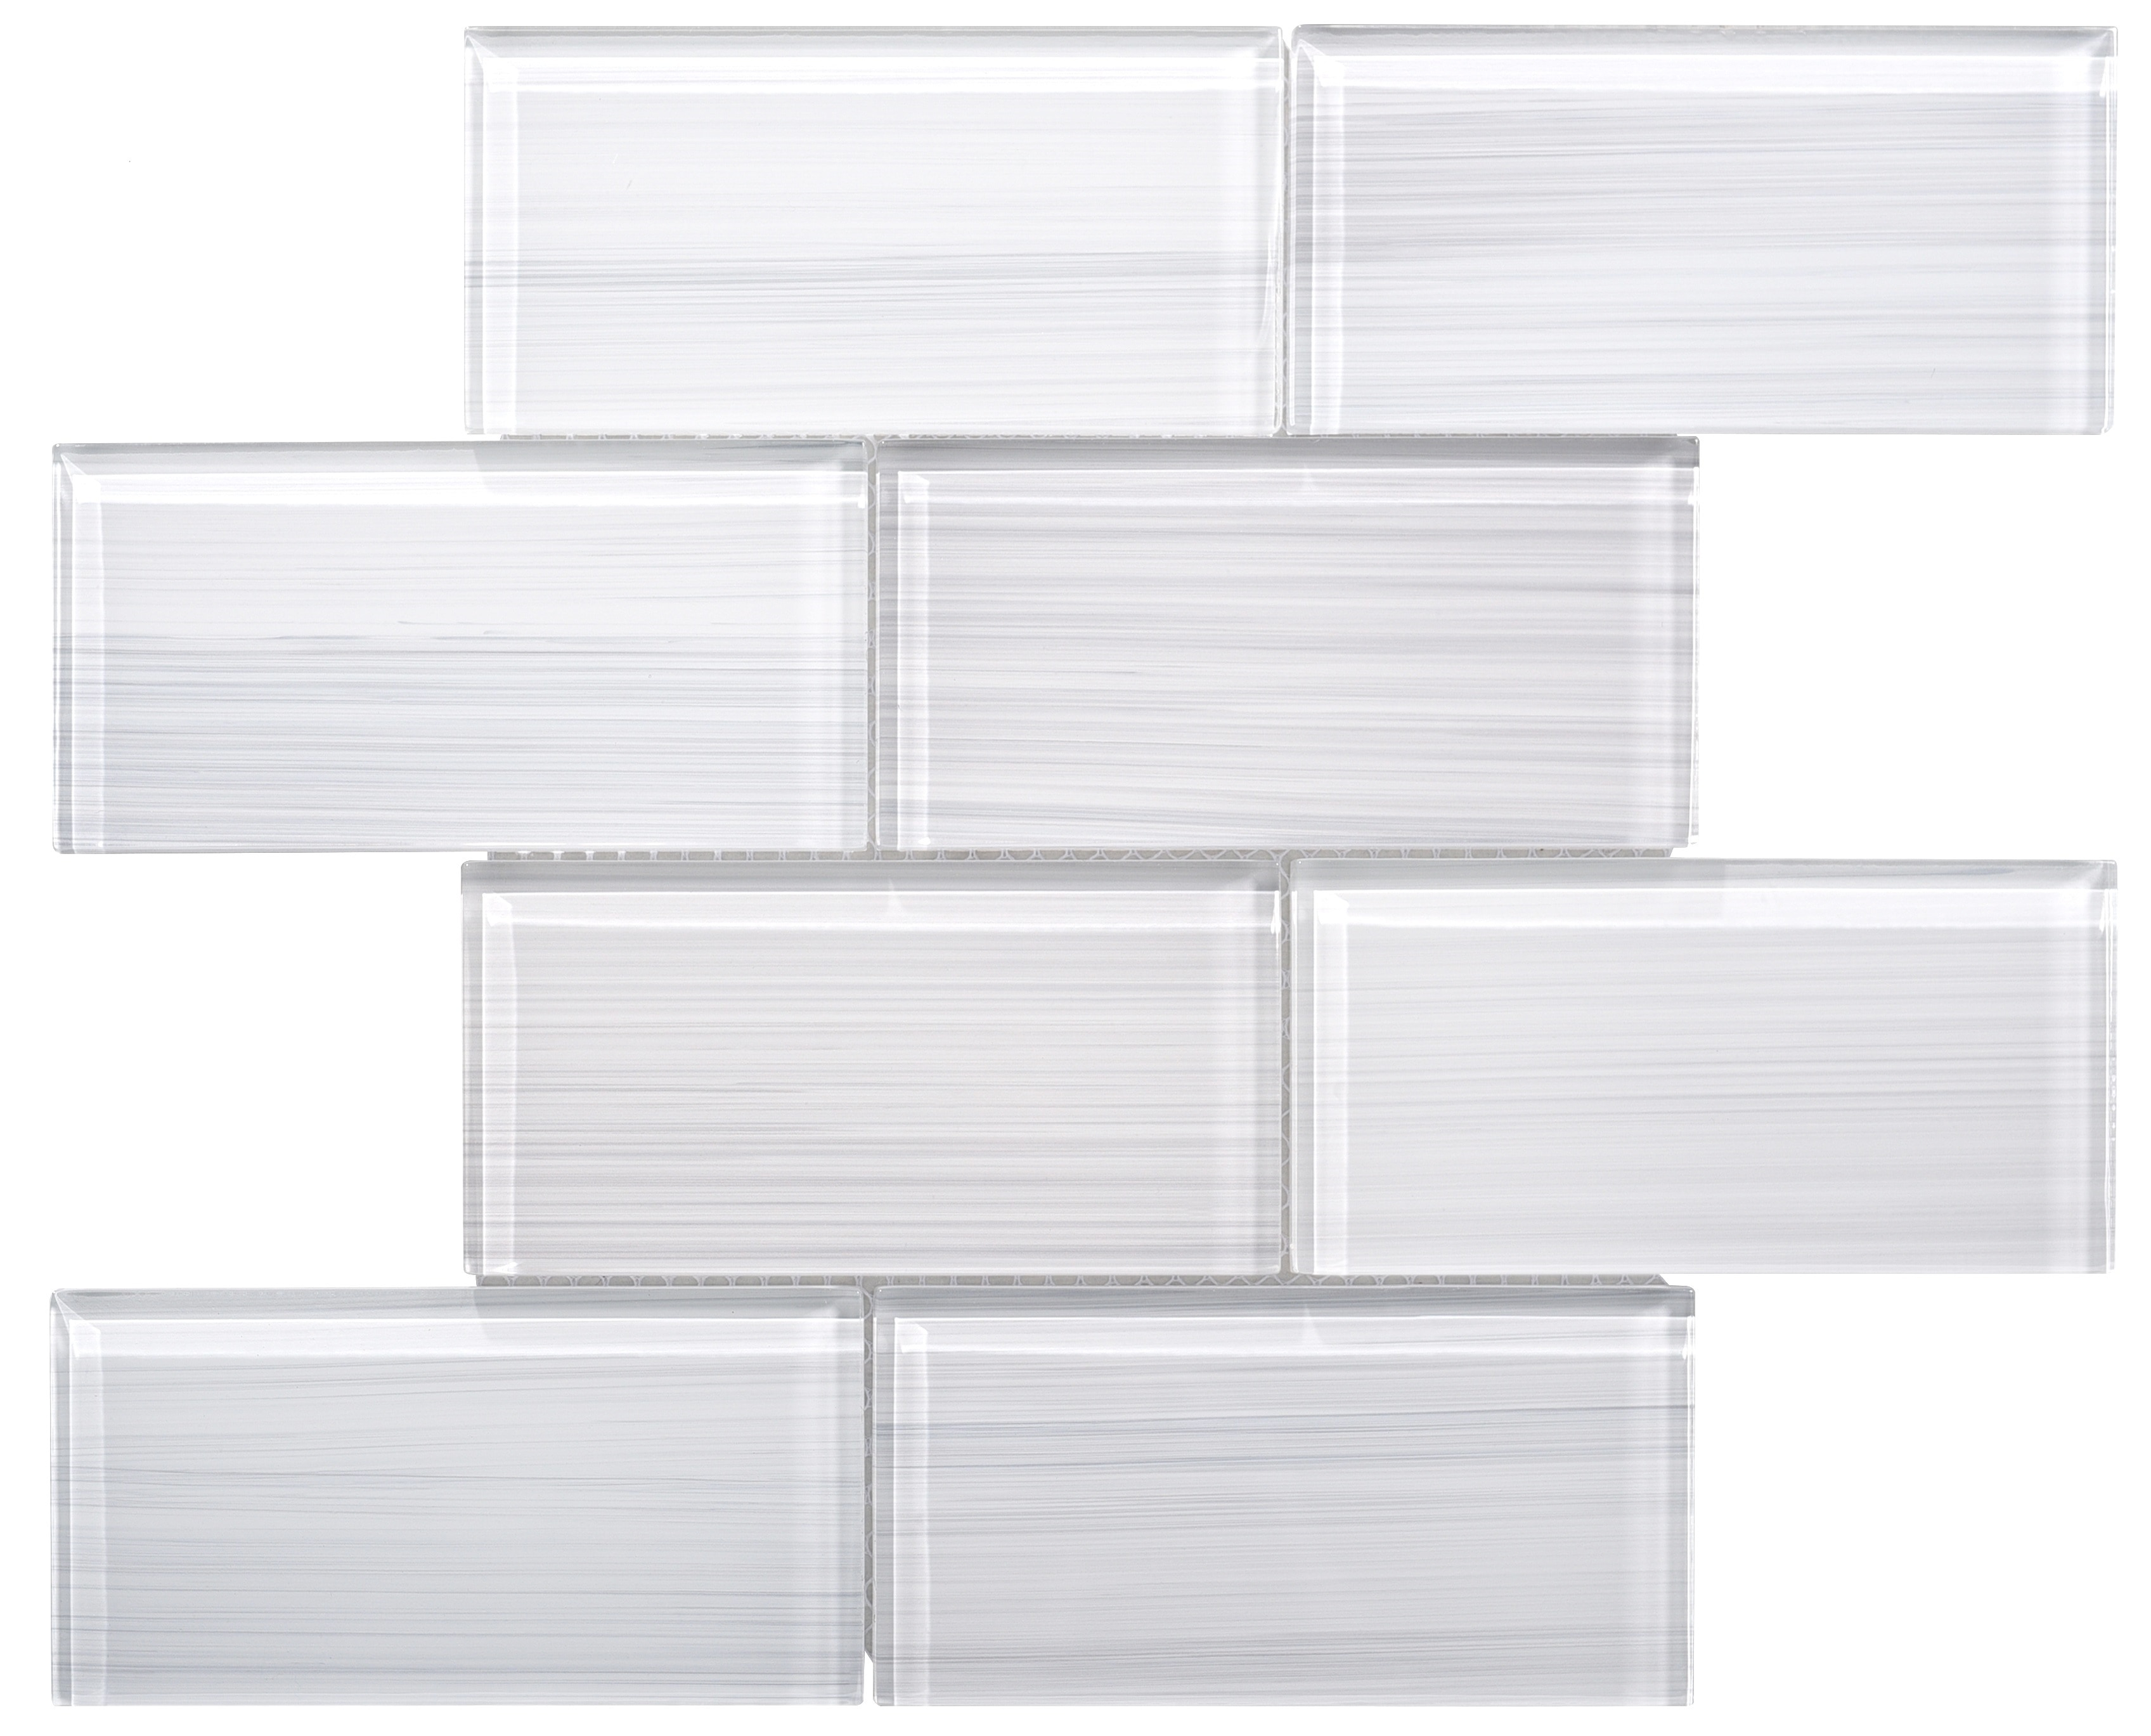 Glass Mosaic / 16 x 12 x 0.31 inches / Glossy Hand Painted Large Glass Subway Tile In White 0